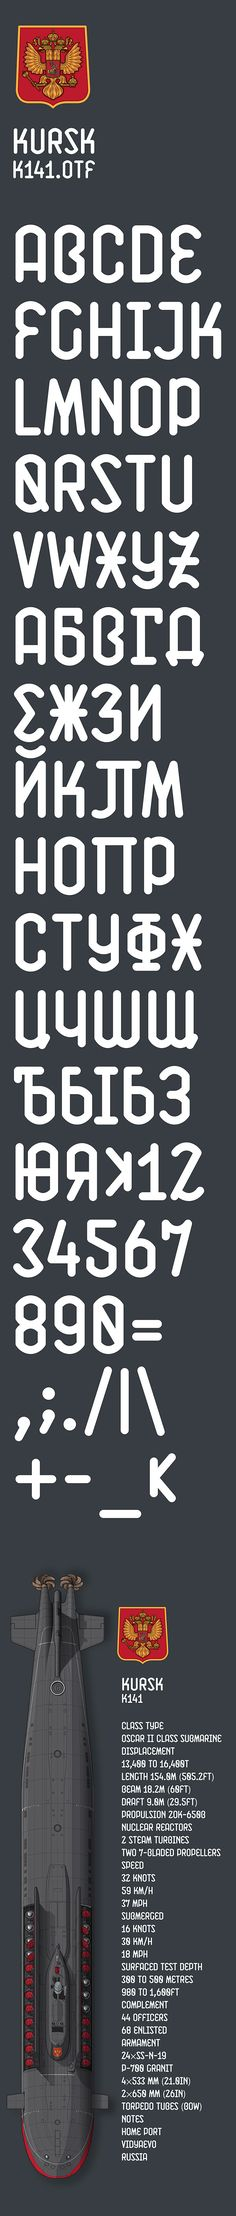 Submarine Kursk Typeface Project. License: declared as FREE, no proper license given.